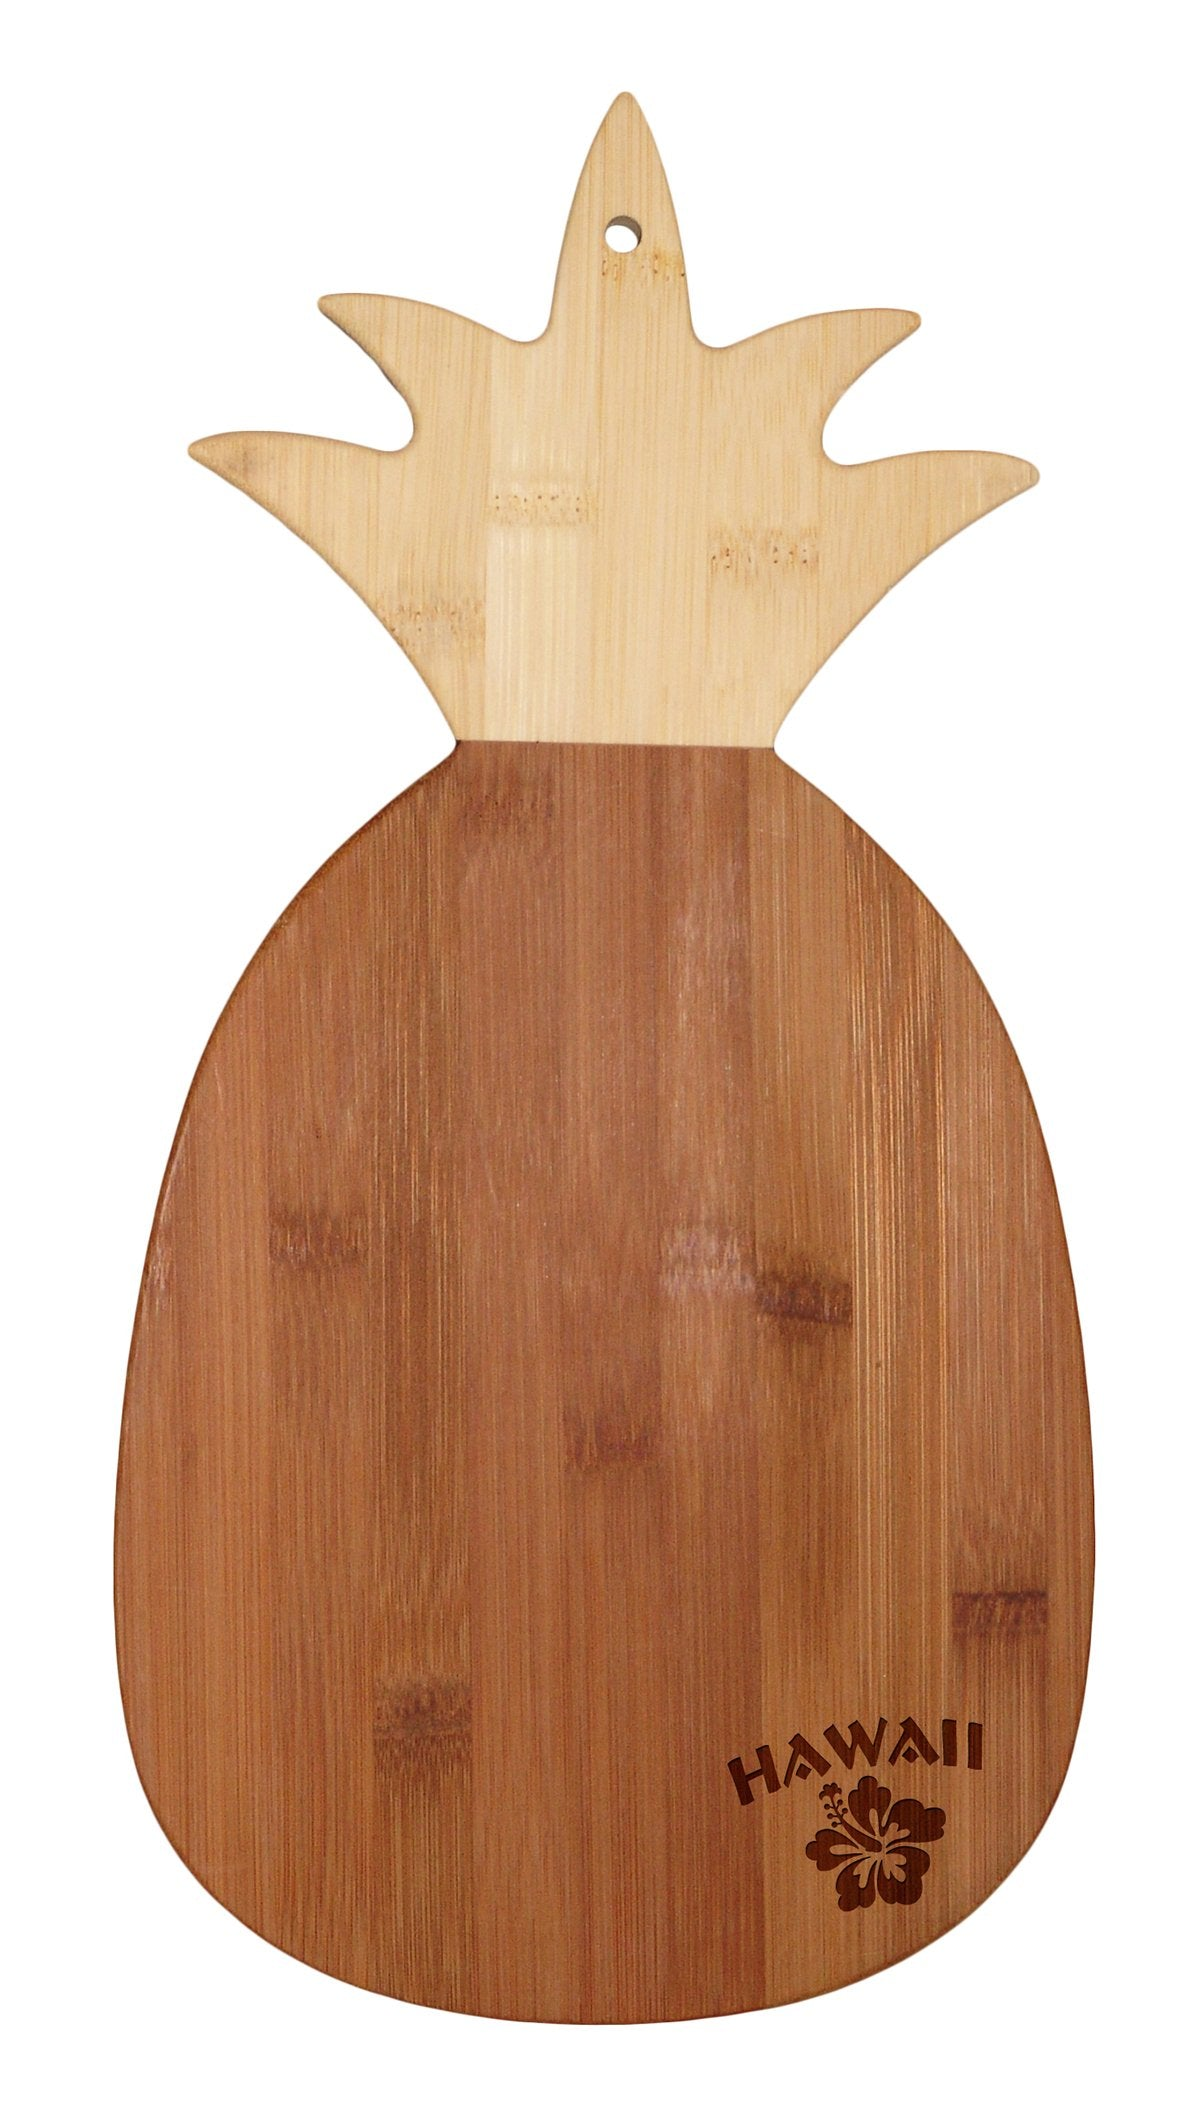 Totally Bamboo Pineapple Board Hawaii